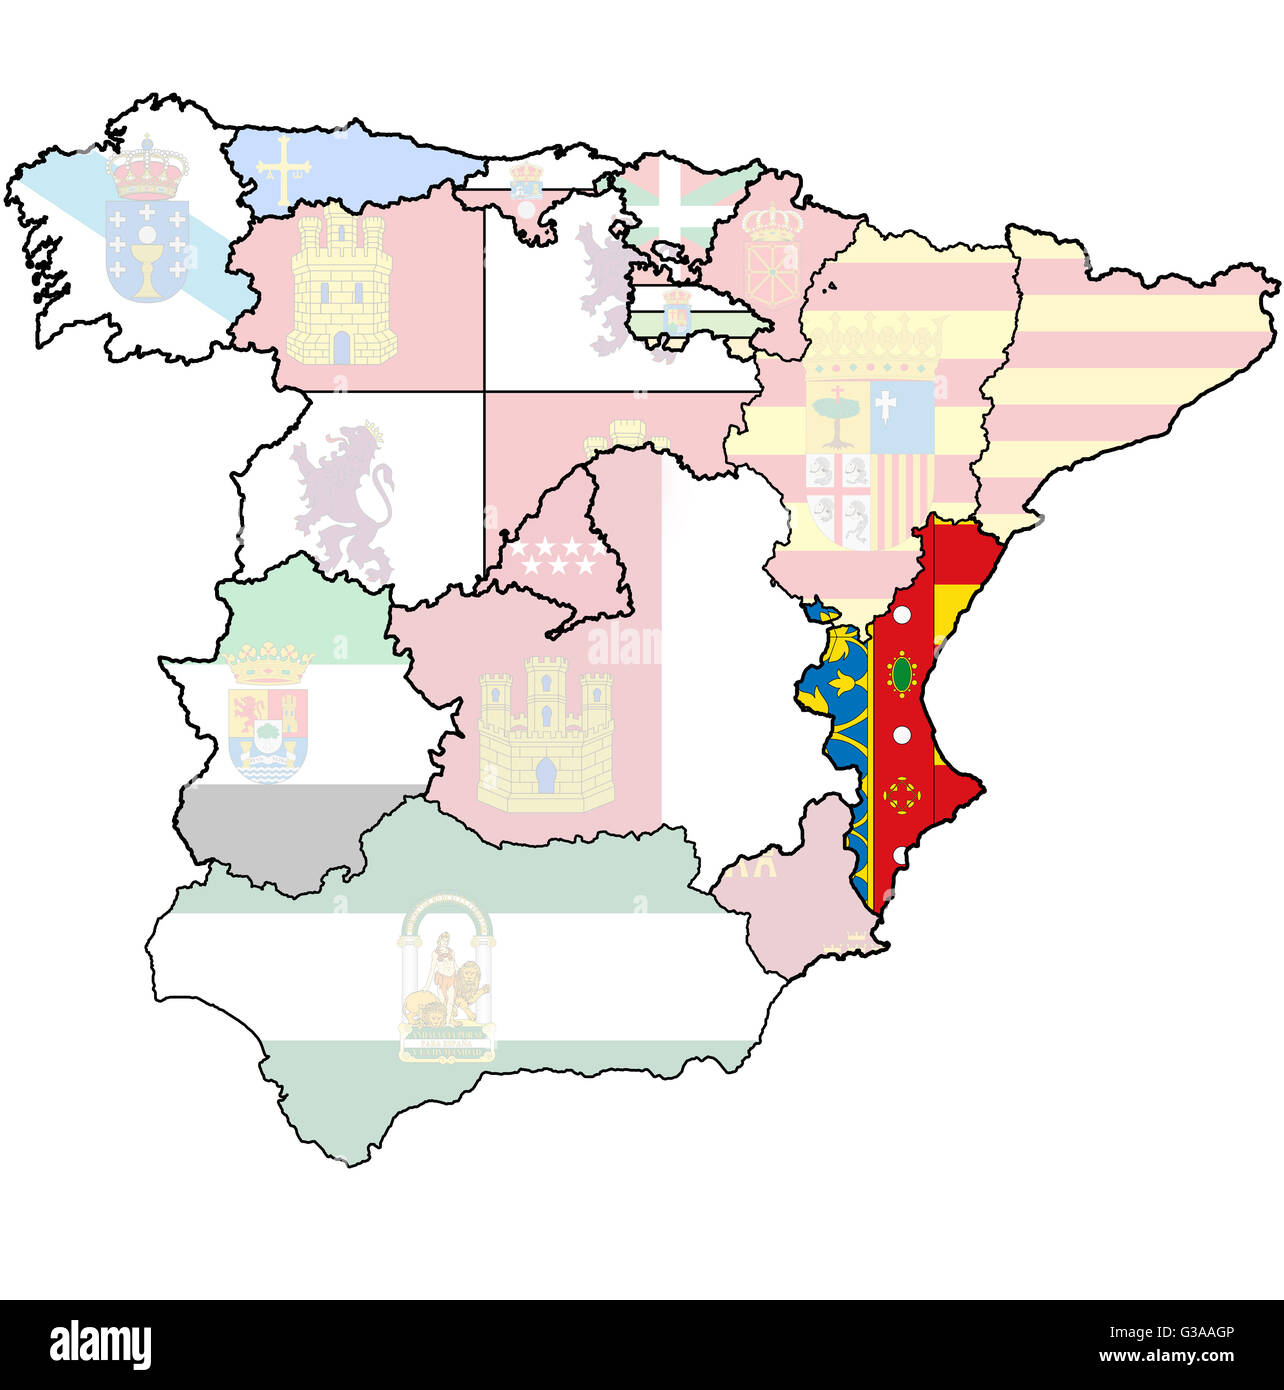 Map Of Spain Valencia.Valencia Region On Administration Map Of Regions Of Spain With Flags